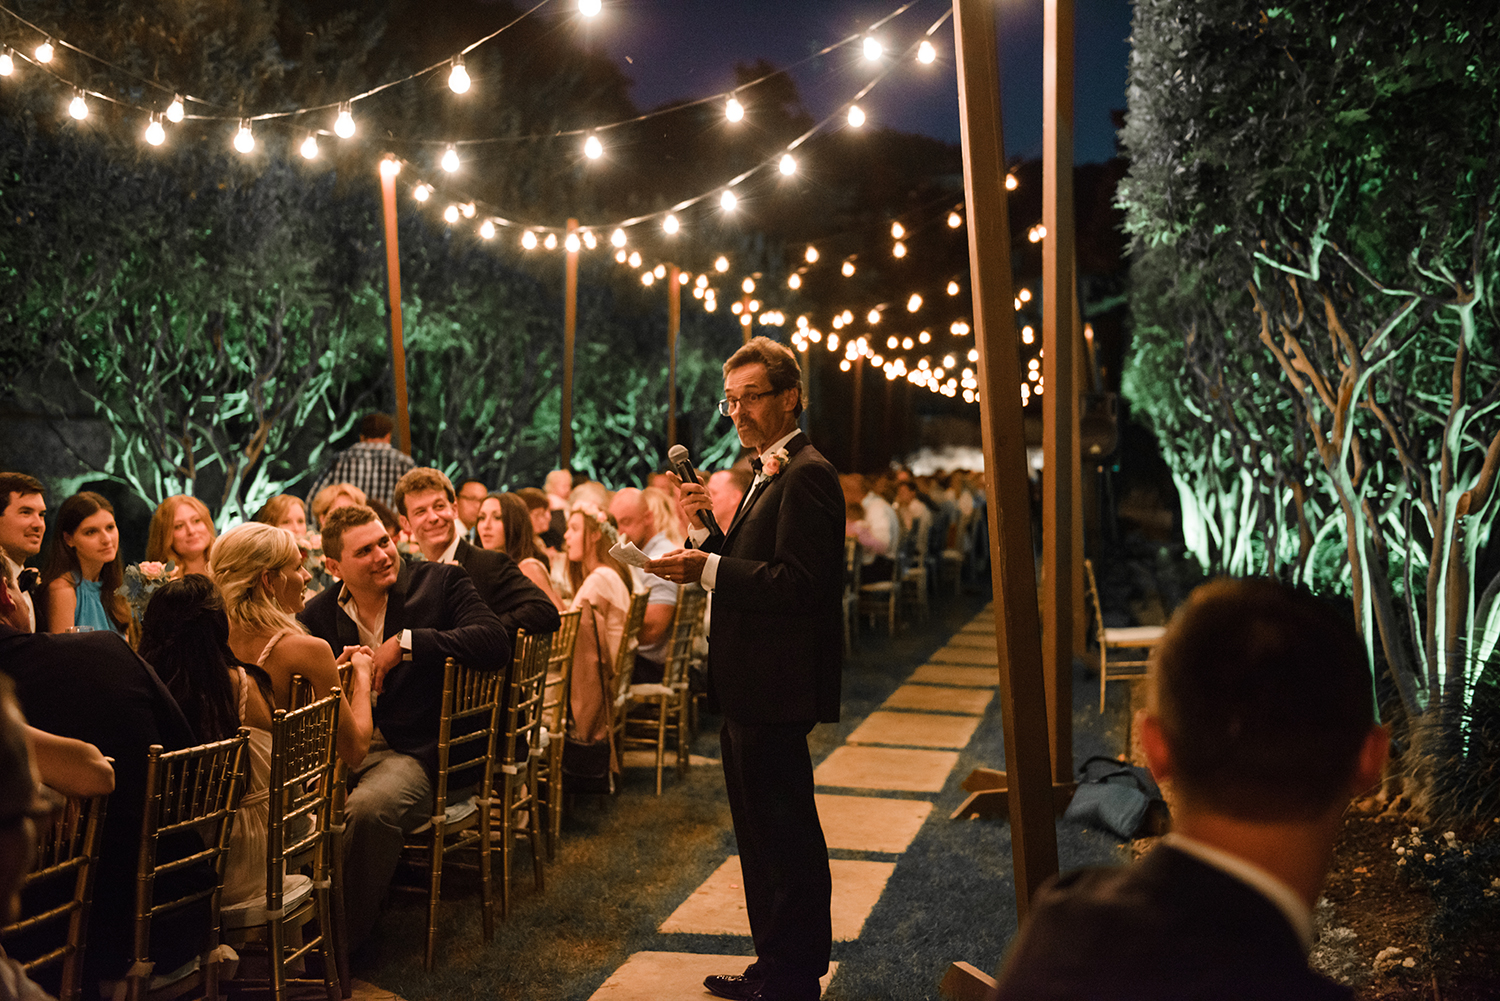 livvyland-blog-olivia-watson-wedding-villa-del-lago-austin-texas-fall-blush-burgundy-classic-romantic-festoon-lighting-father-bride-speech